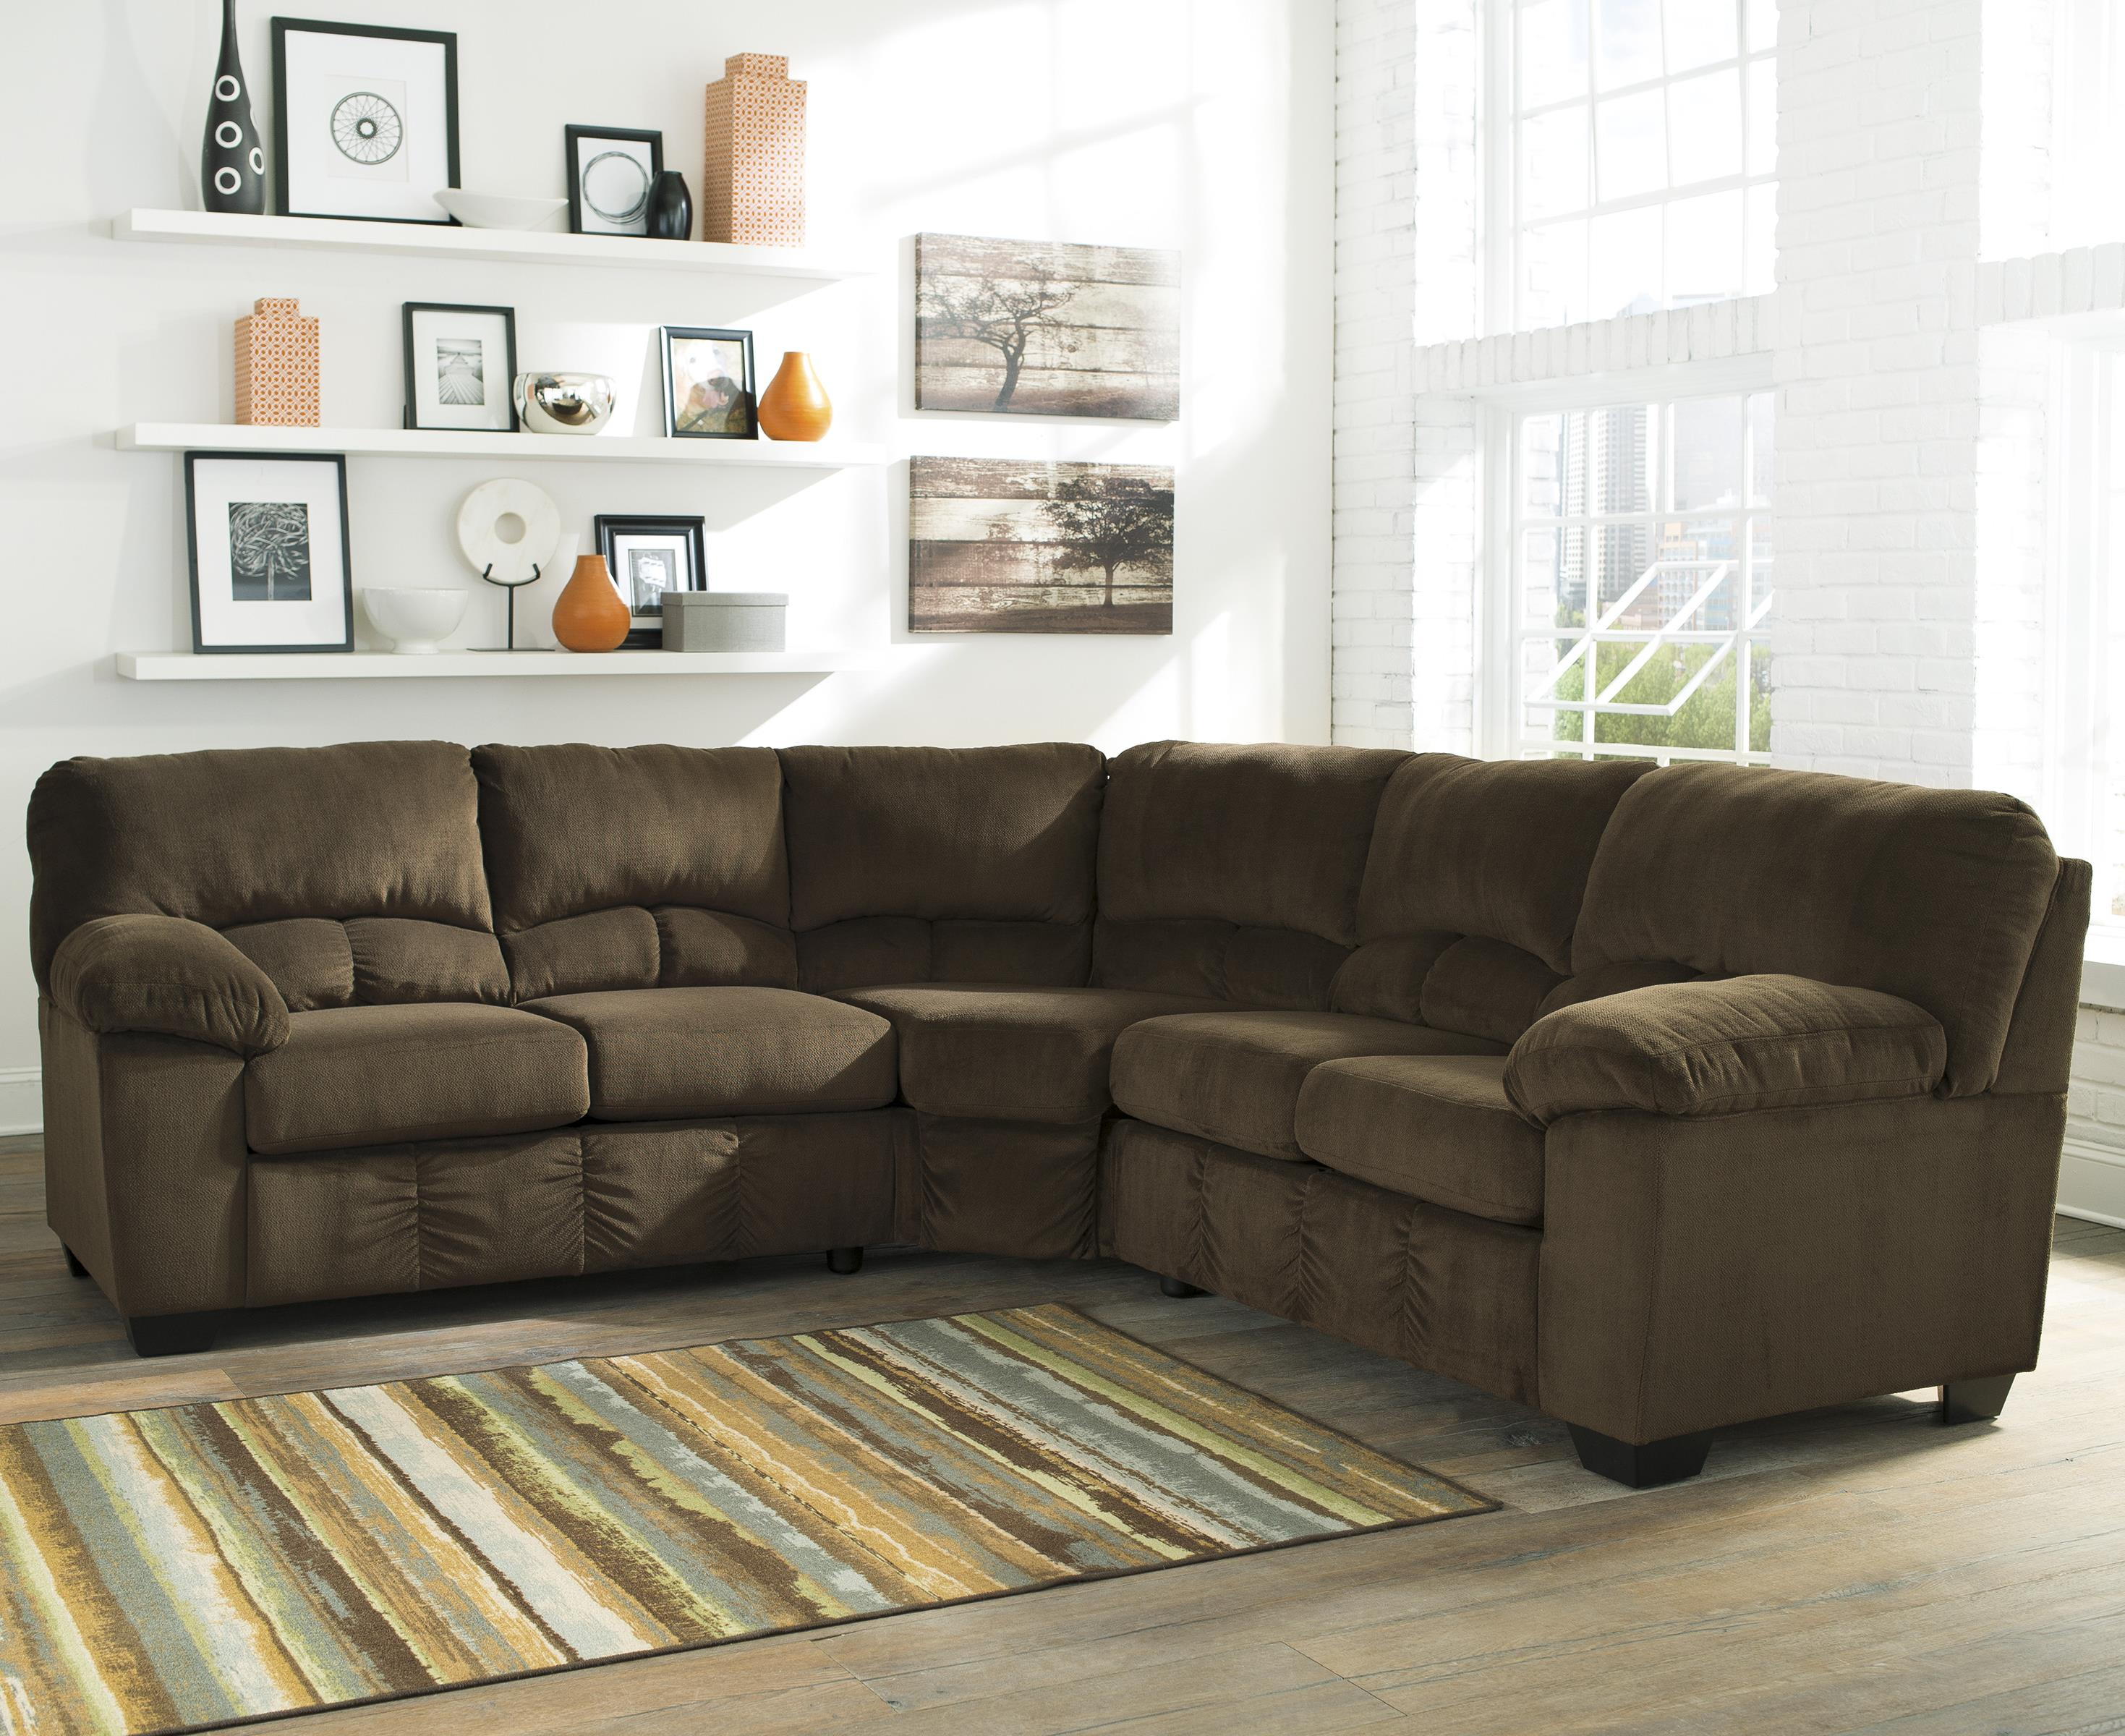 Signature Design by Ashley Dailey Sectional - Item Number: 9540355+56